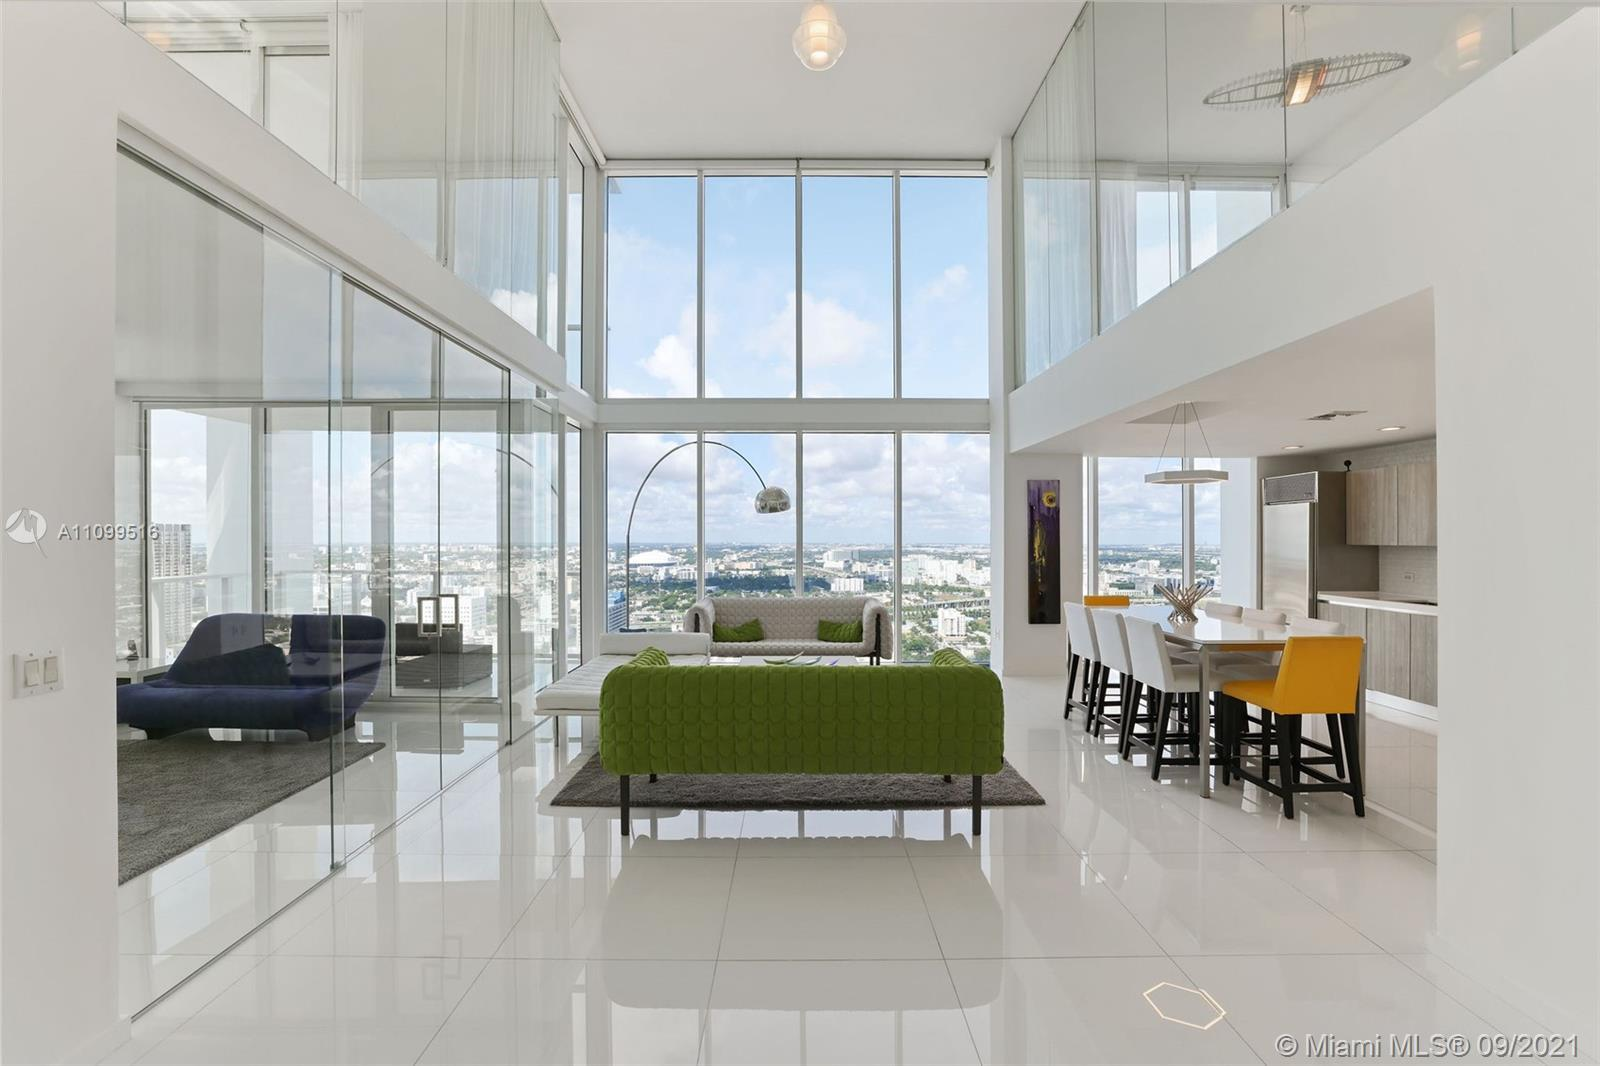 Welcome to one of the most spectacular tower suite lofts in the very boutique Ten Museum Park, locat